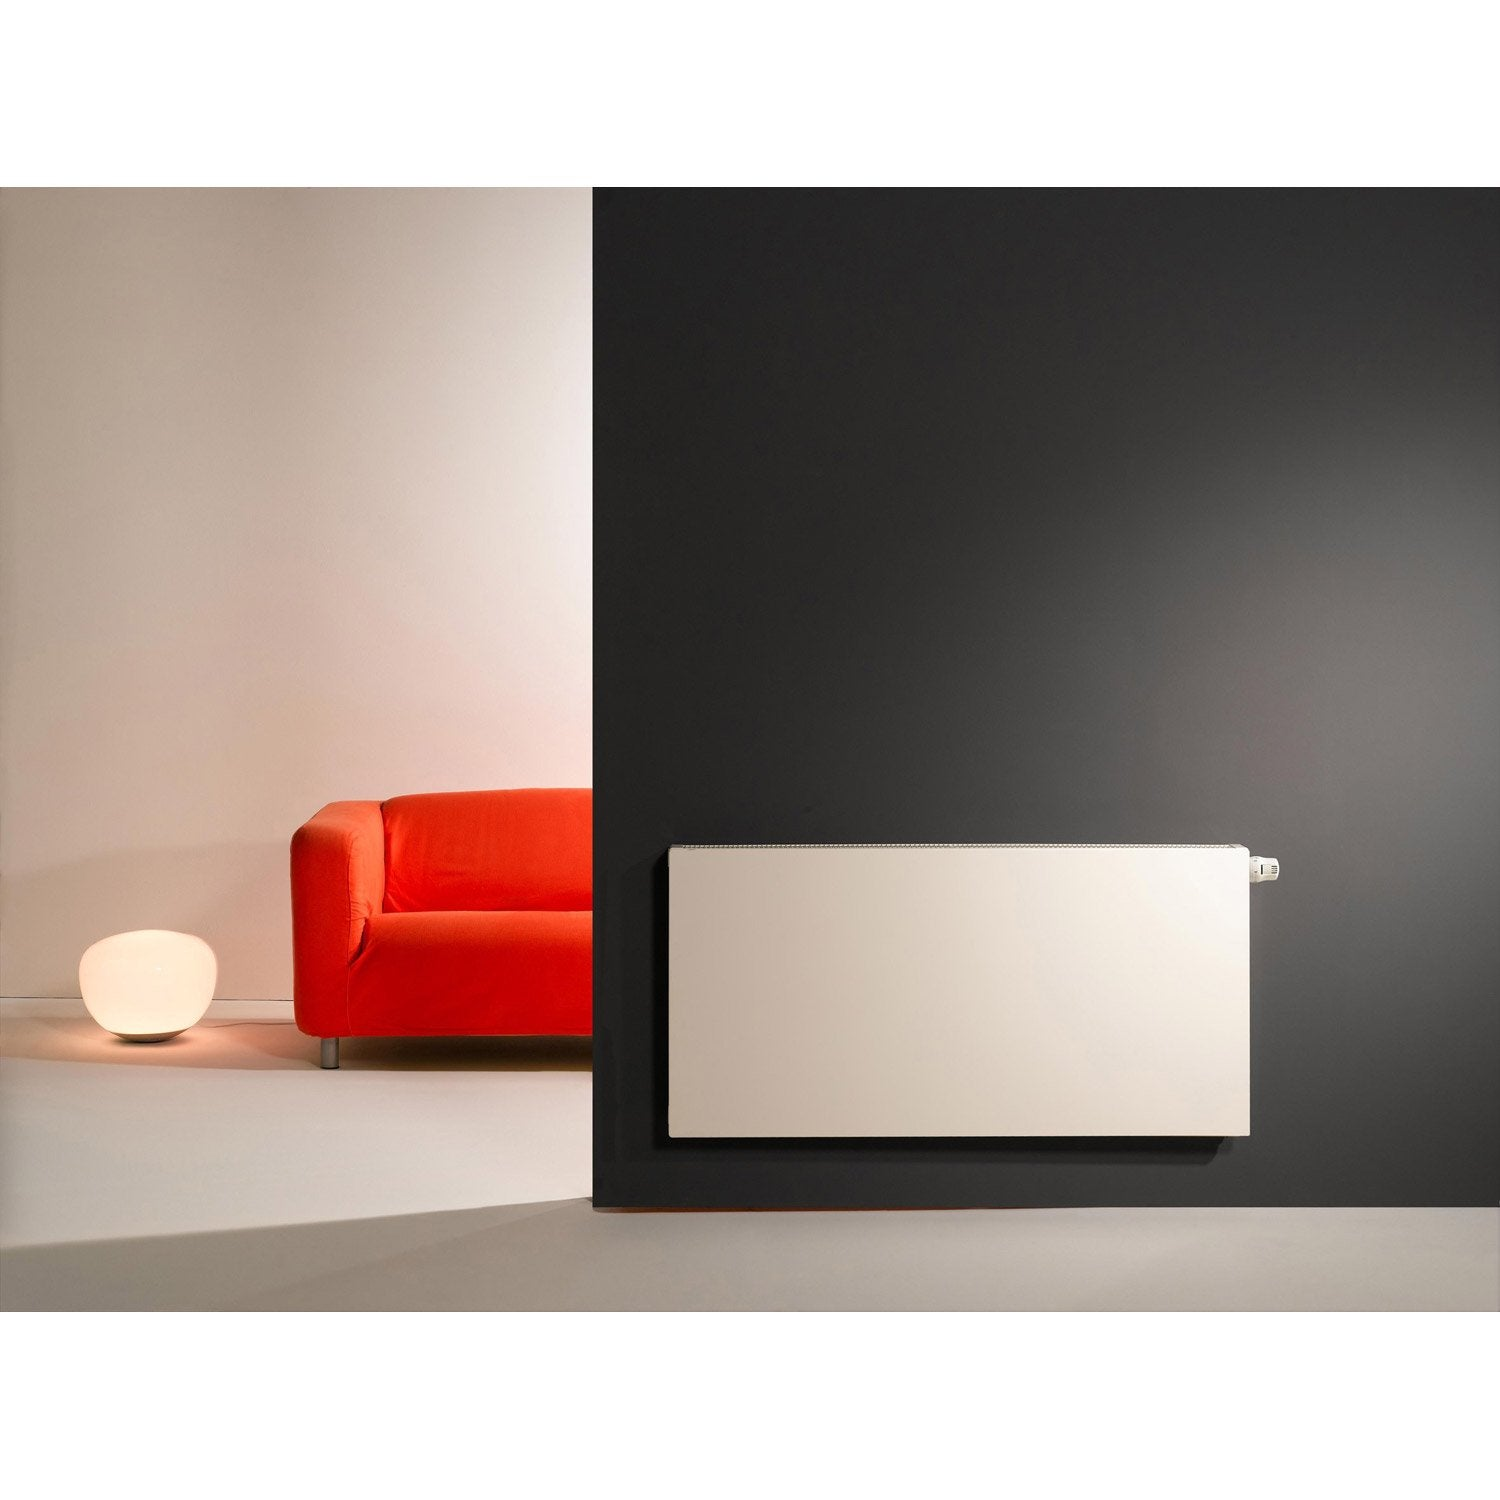 radiateur chauffage central colima blanc cm 913 w leroy merlin. Black Bedroom Furniture Sets. Home Design Ideas